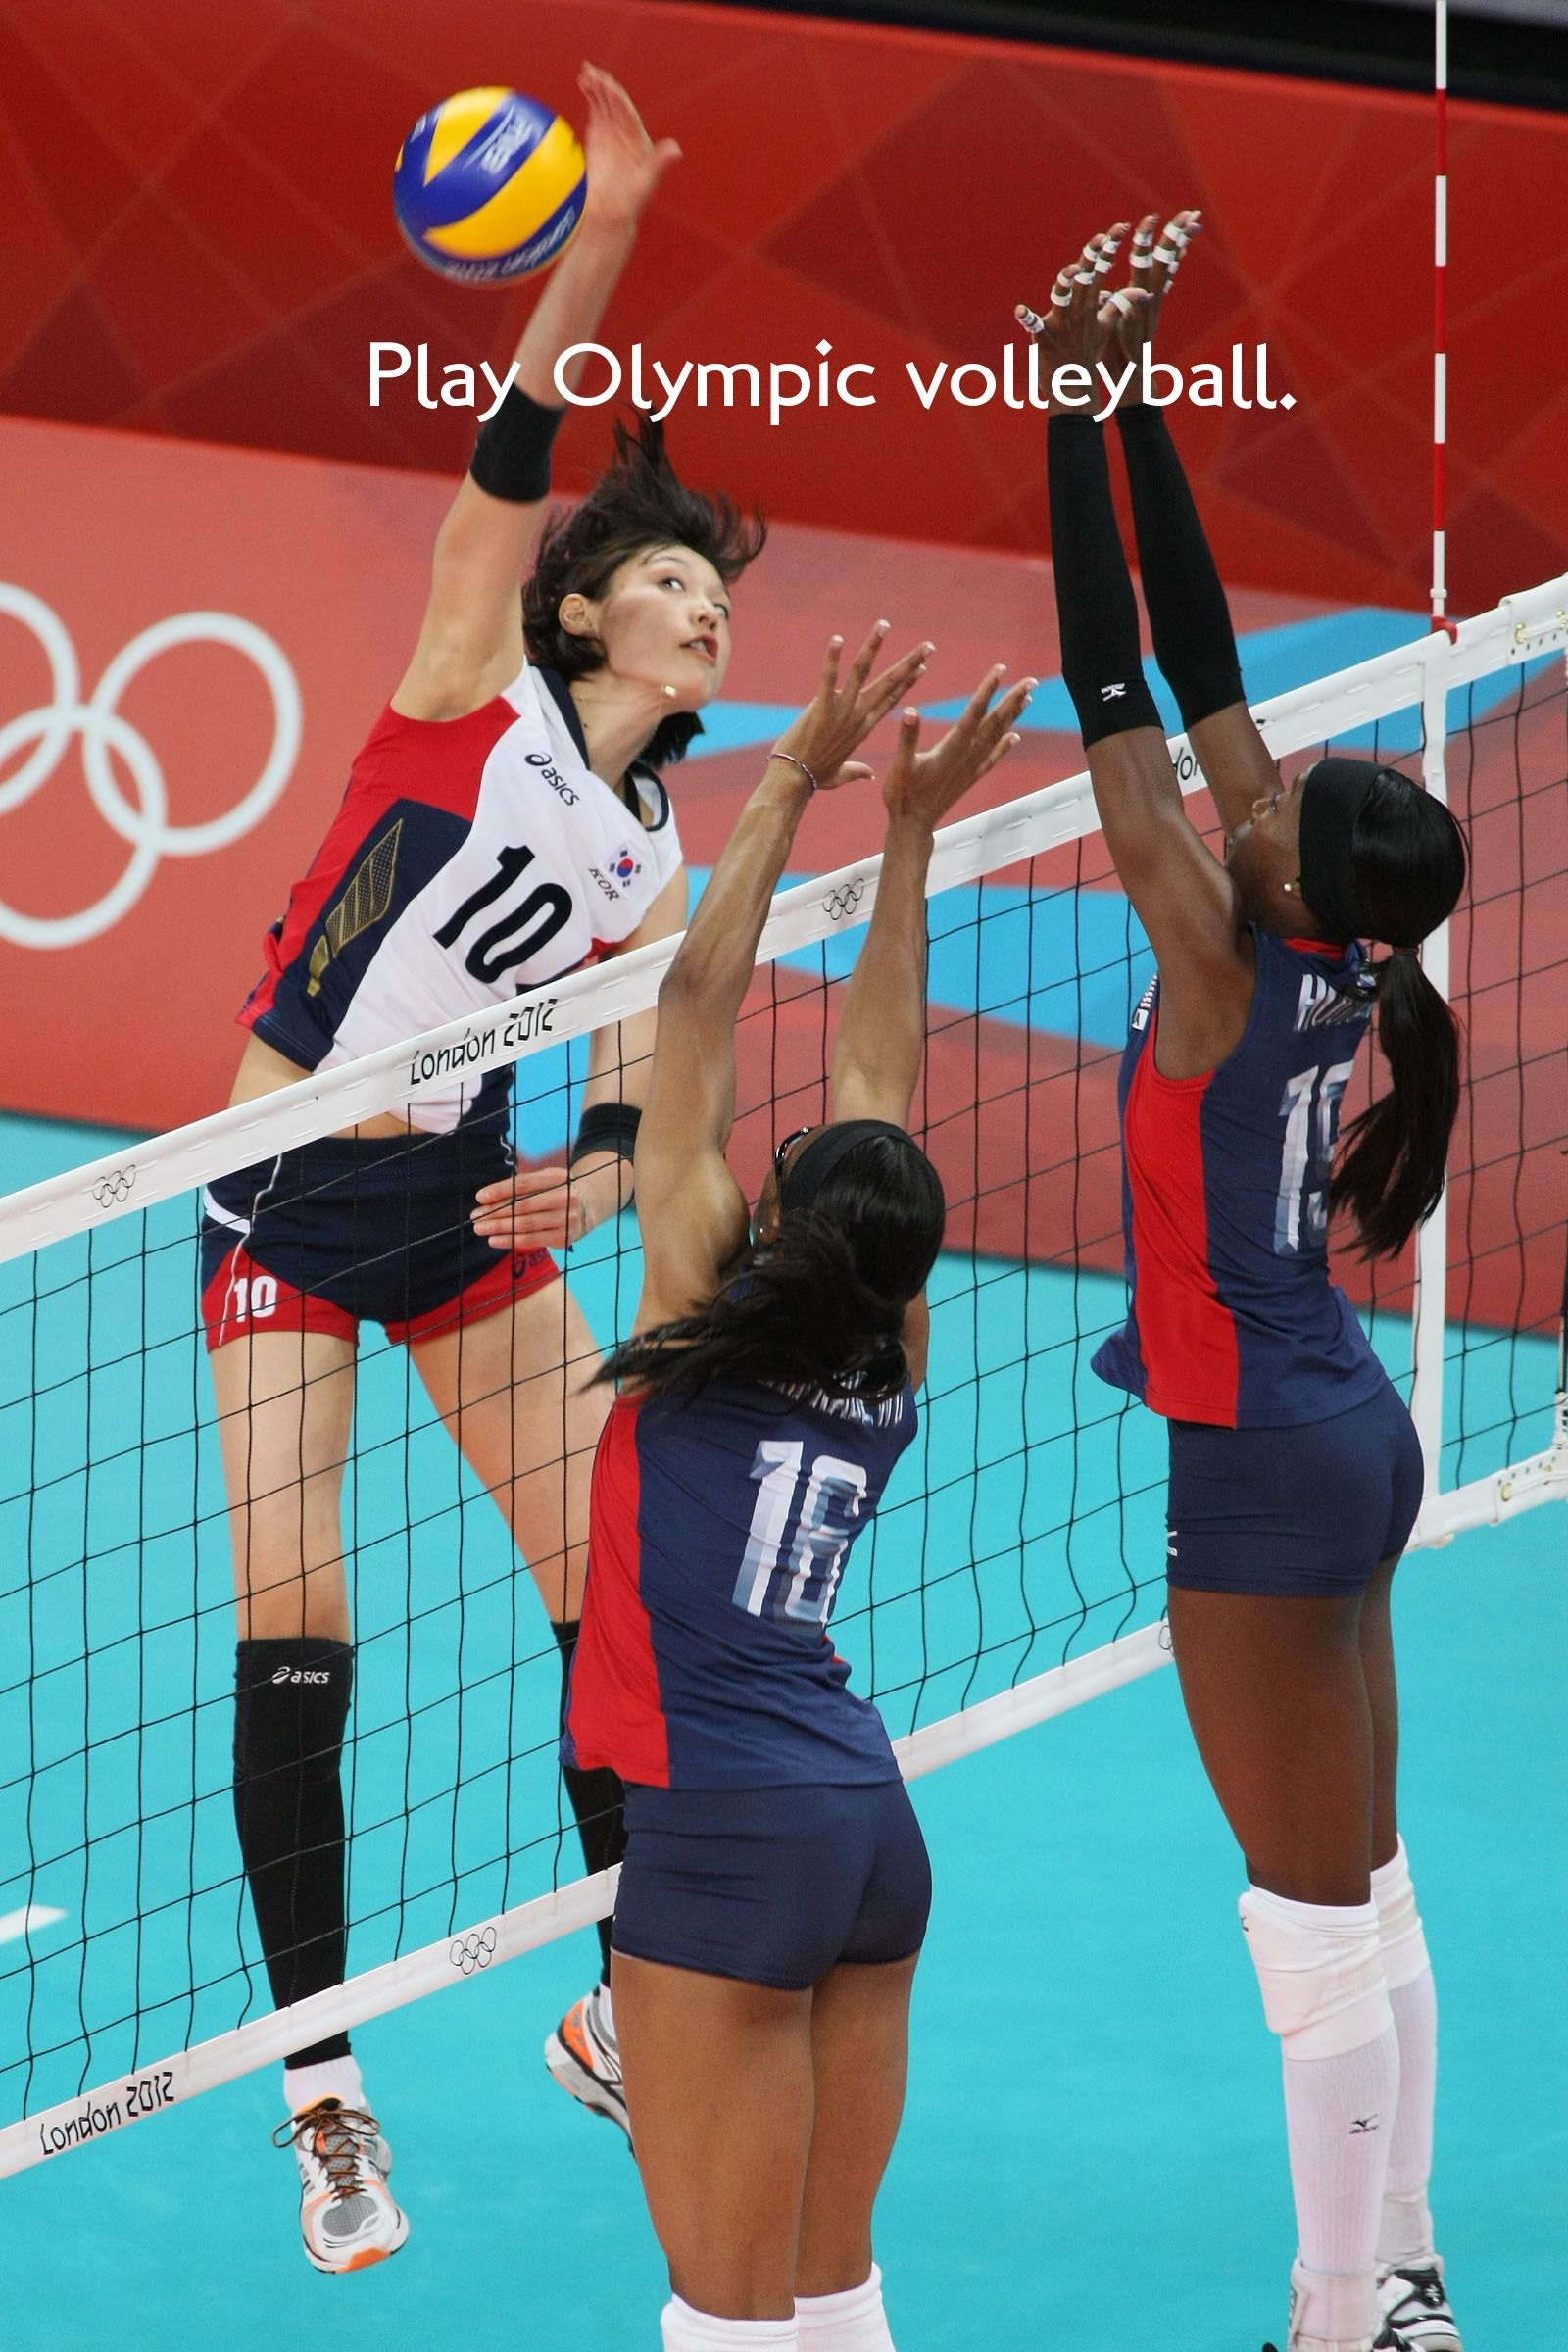 Play Olympic Volleyball Olympic Volleyball Volleyball Photography Usa Volleyball